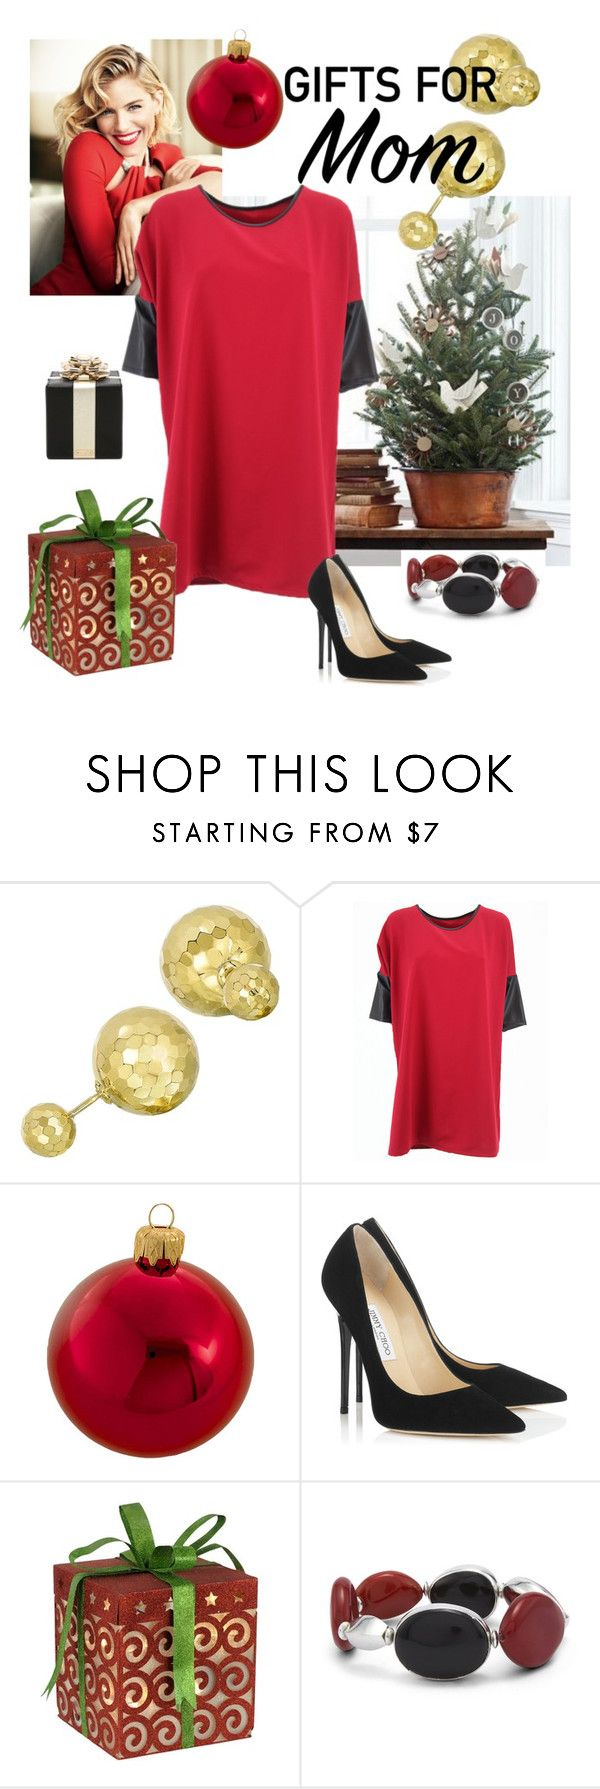 Gifts for  mommy by areachic on Polyvore featuring moda, Jimmy Choo, Kate Spade, Chico's, Kurt Adler, giftguide, Holly, giftideas, xmas and areachic